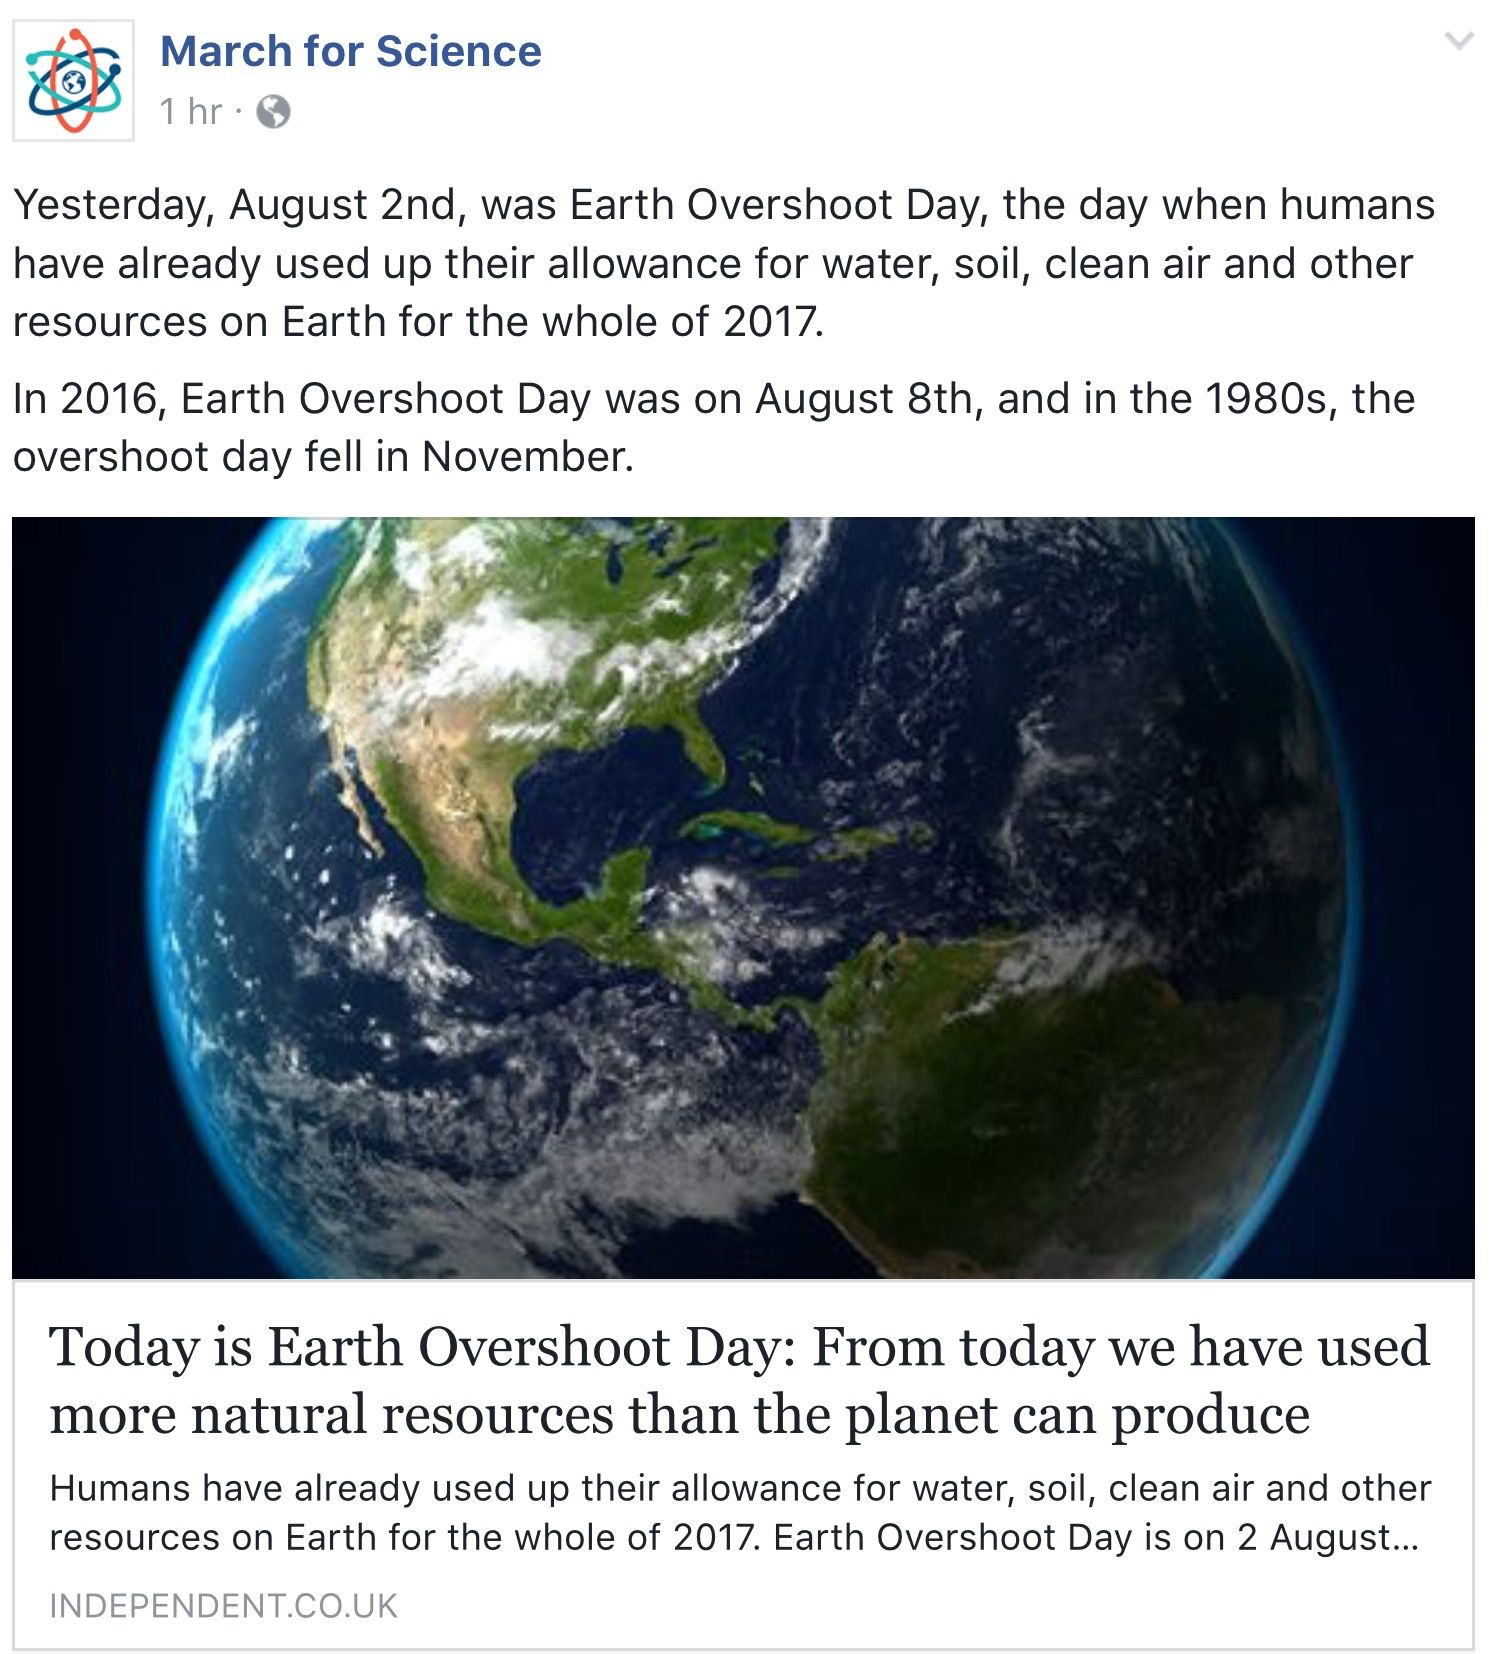 Today is Earth Overshoot Day From today we have used more